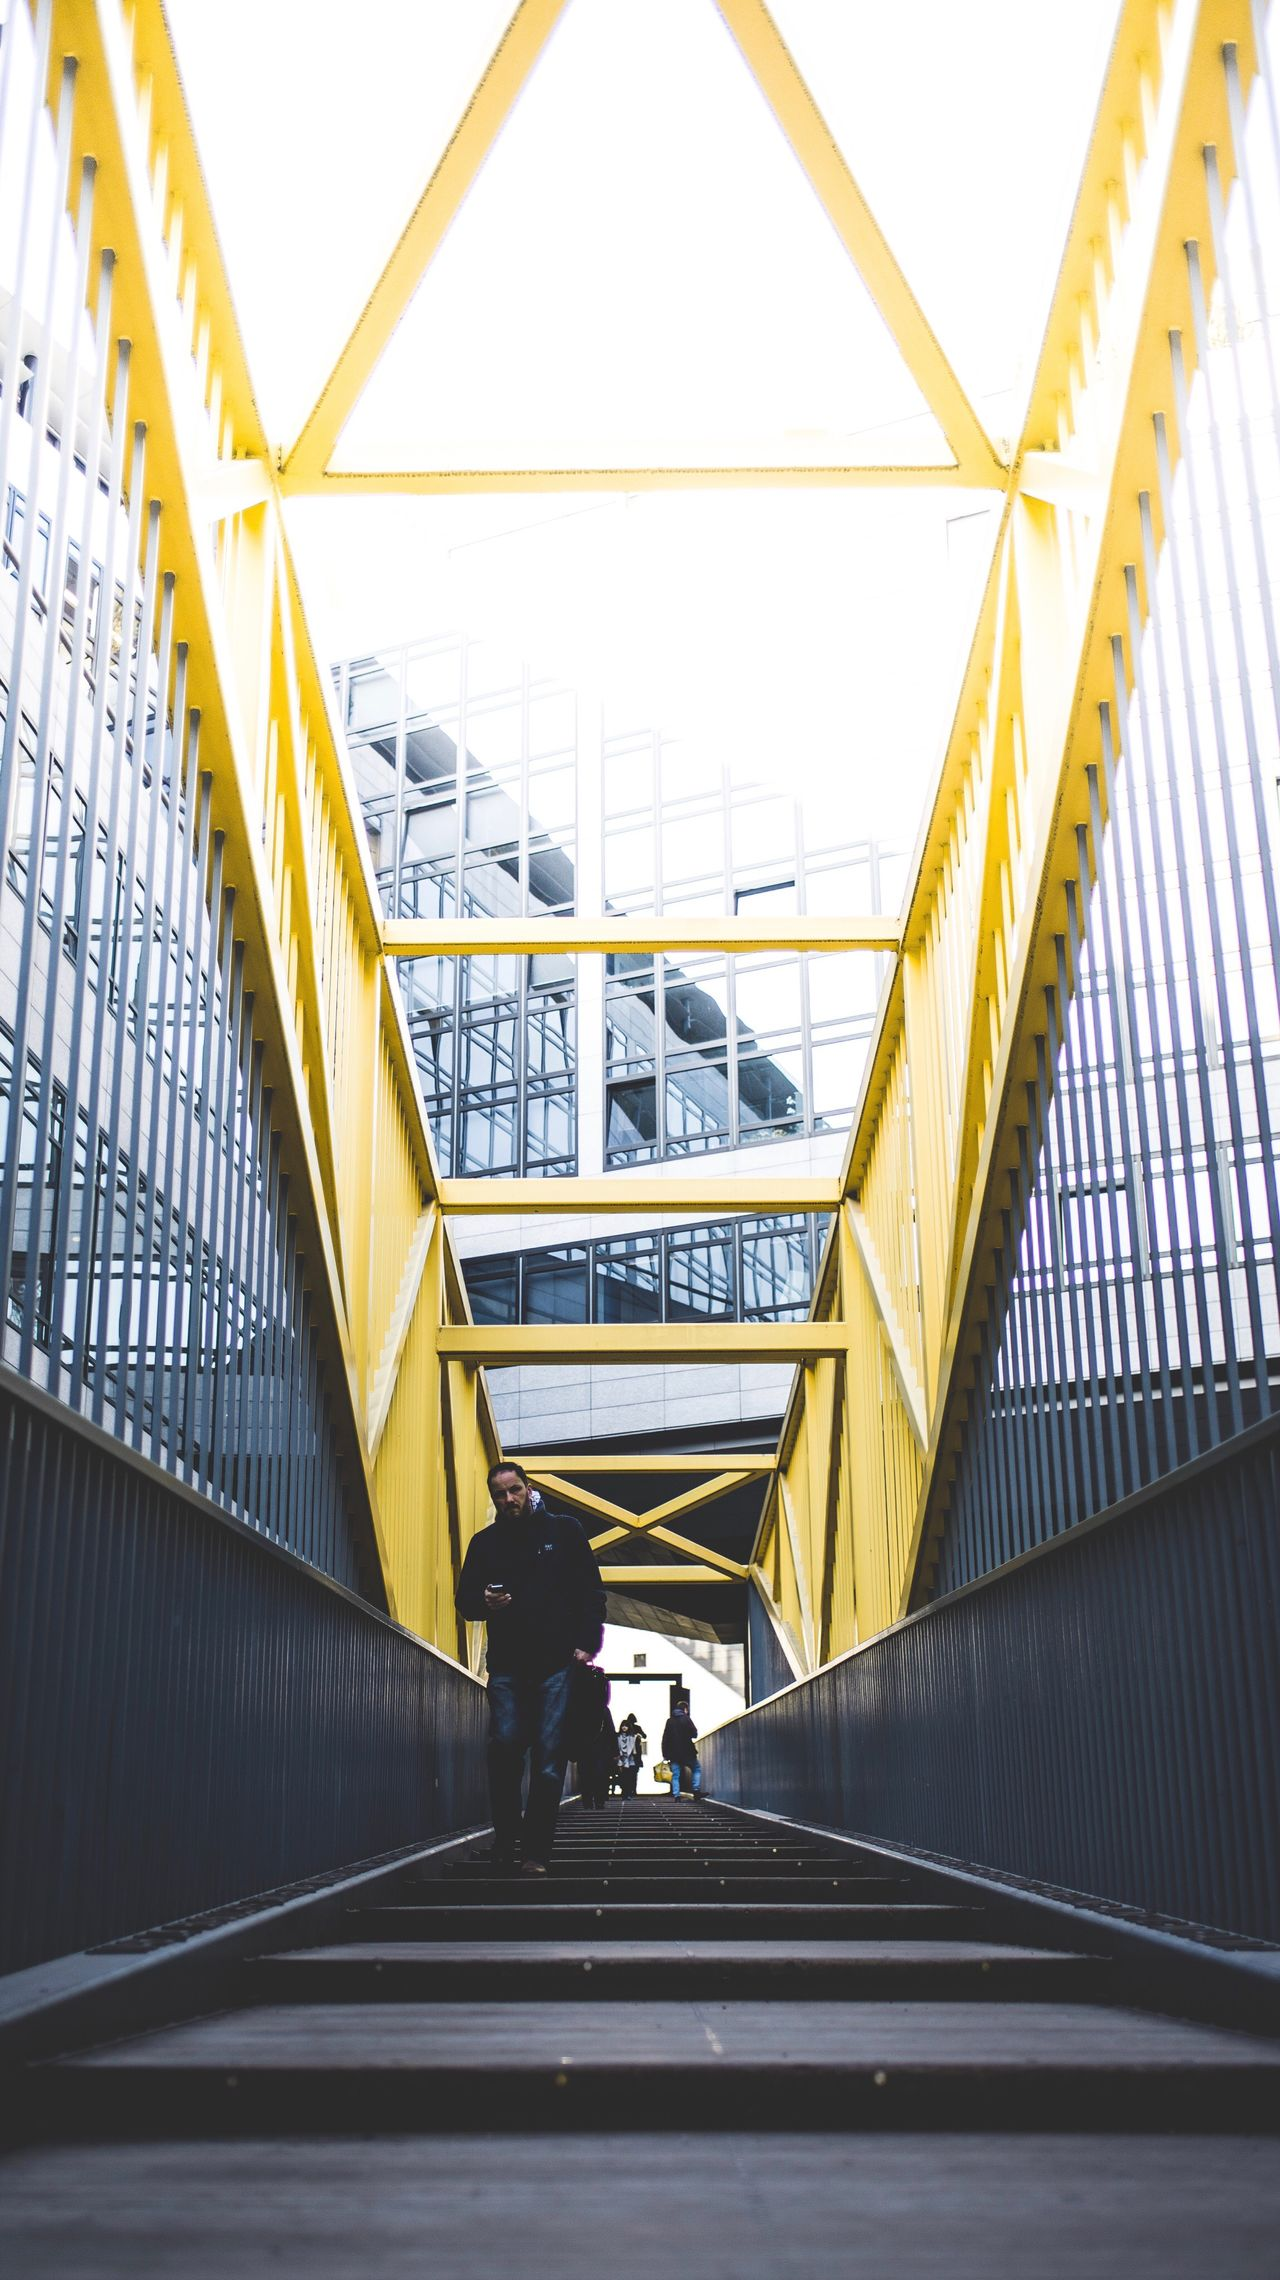 Full Length Real People Architecture Railing Two People Built Structure Yellow Steps And Staircases Lifestyles Men Staircase Day Bridge - Man Made Structure Outdoors Only Men Adults Only People Adult